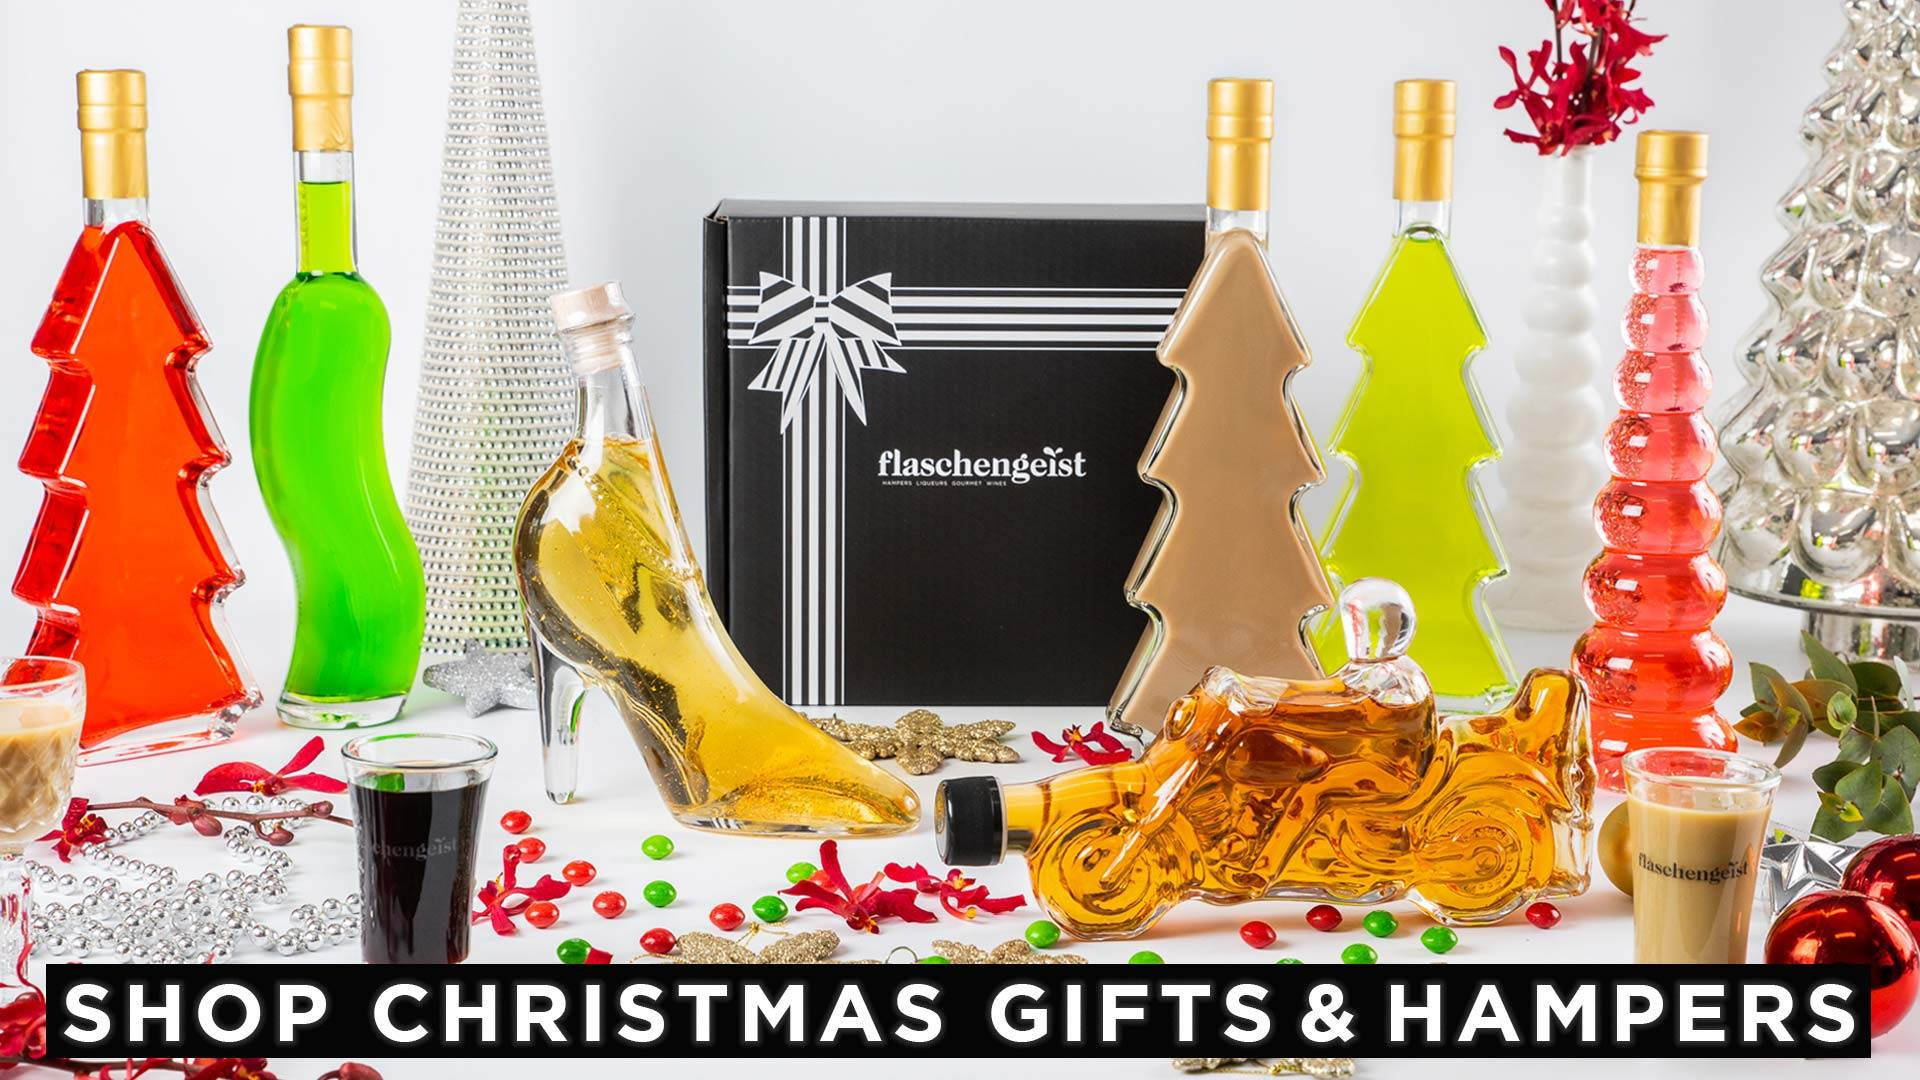 Shop Christmas Gifts & Hampers